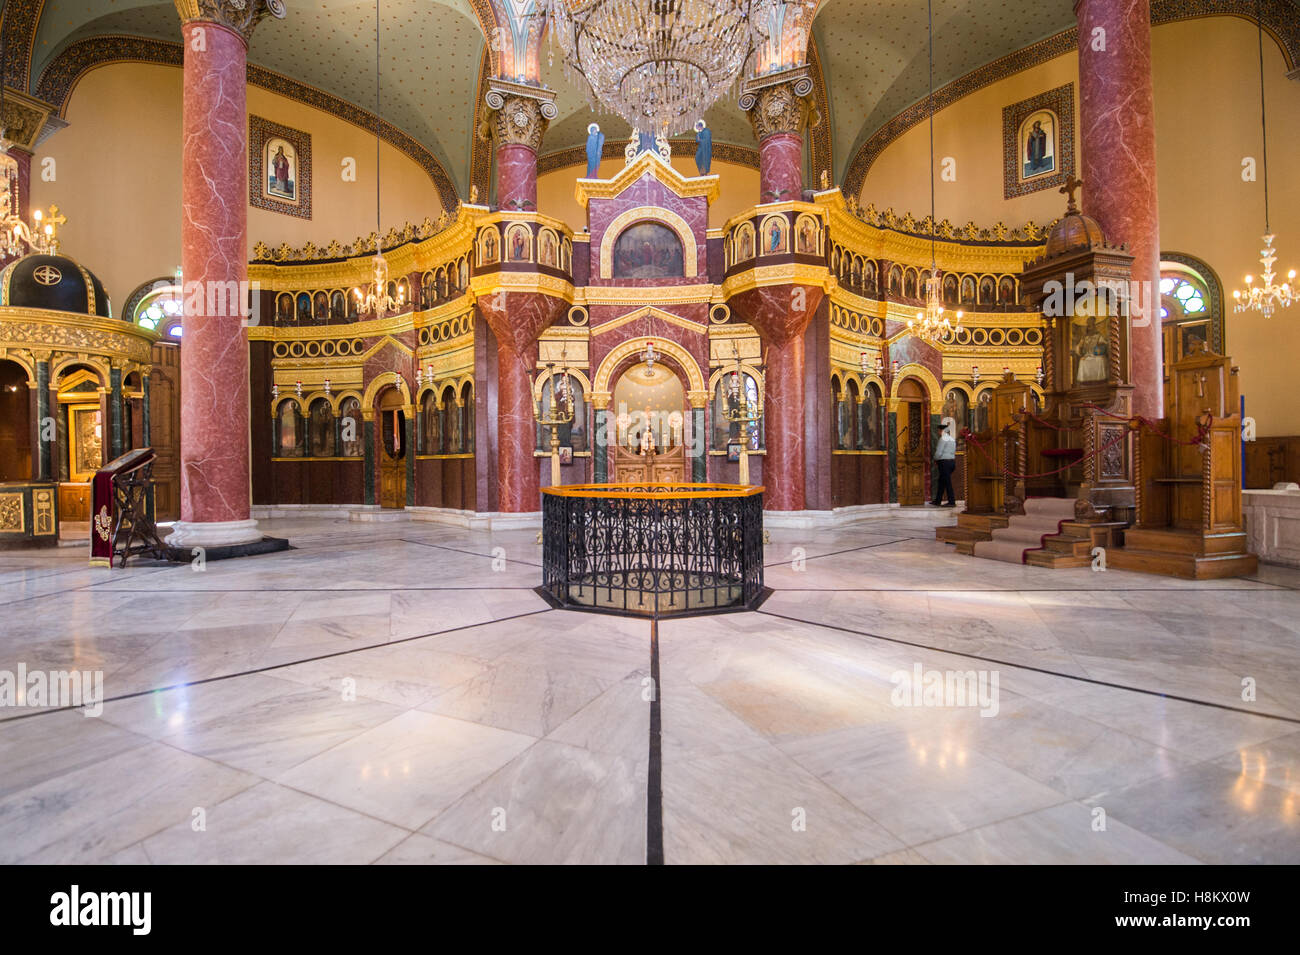 Cairo, Egypt. Ornate interior of the rebuilt Monastery of St George in the Coptic Quarter in Cairo. - Stock Image